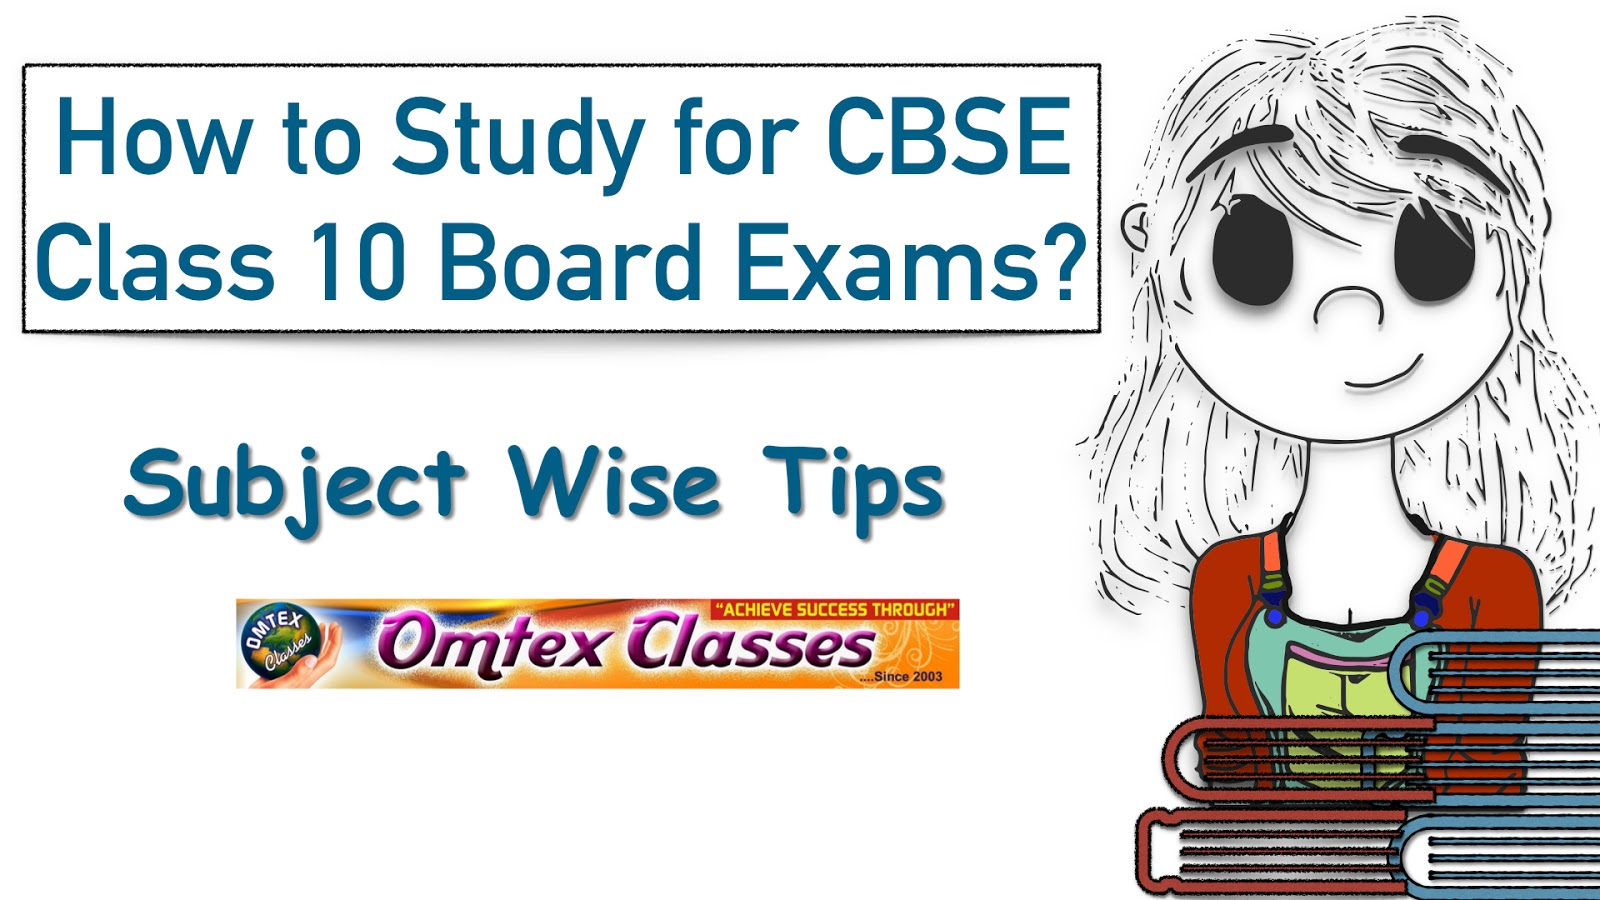 OMTEX CLASSES: How to Study for CBSE Class 10 Board Exams